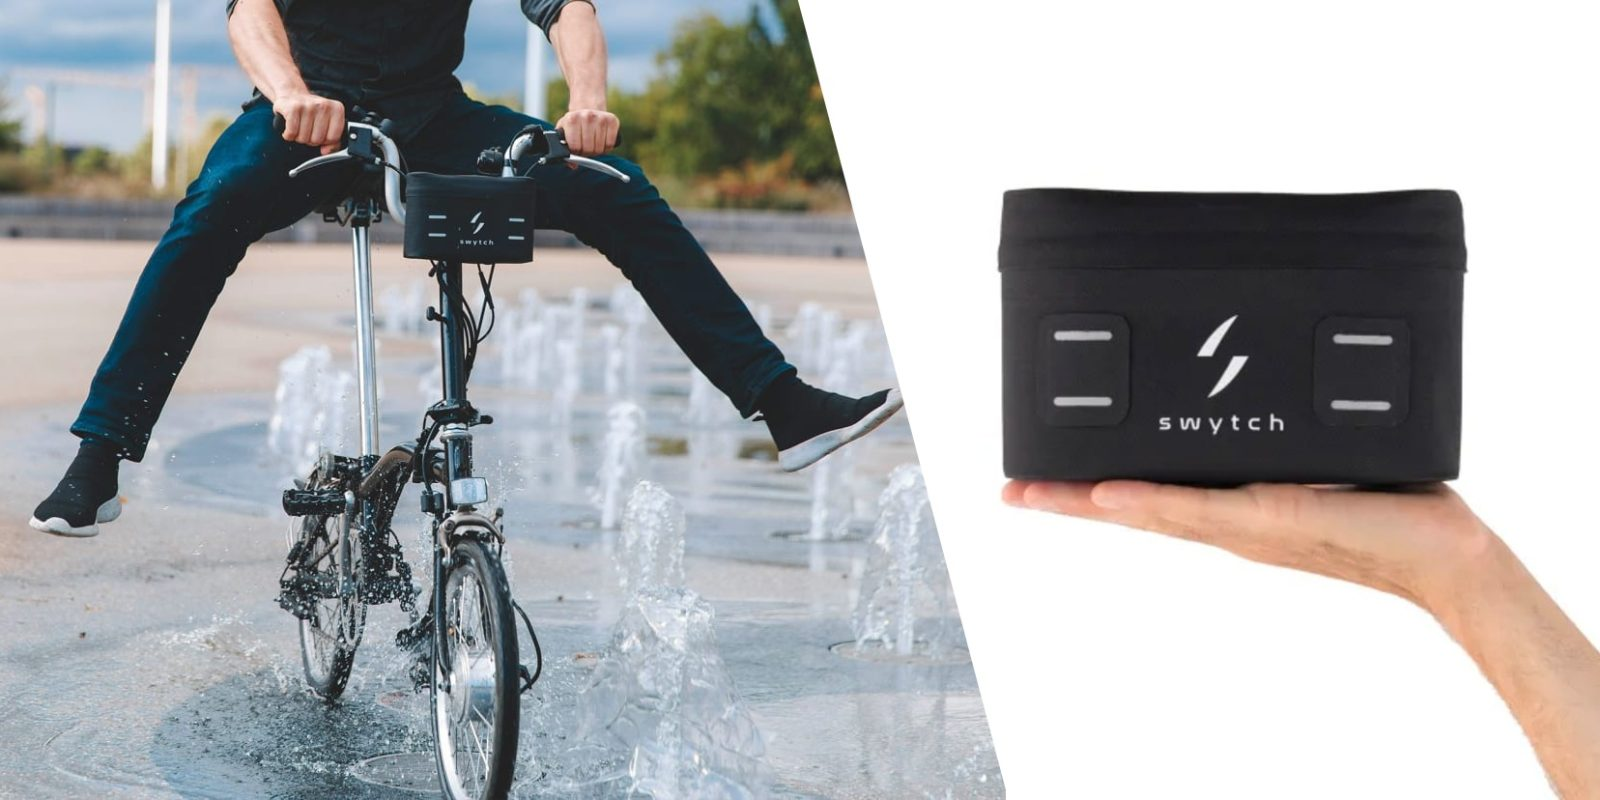 Swytch unveils 'world's smallest' electric bike conversion kit for just $394